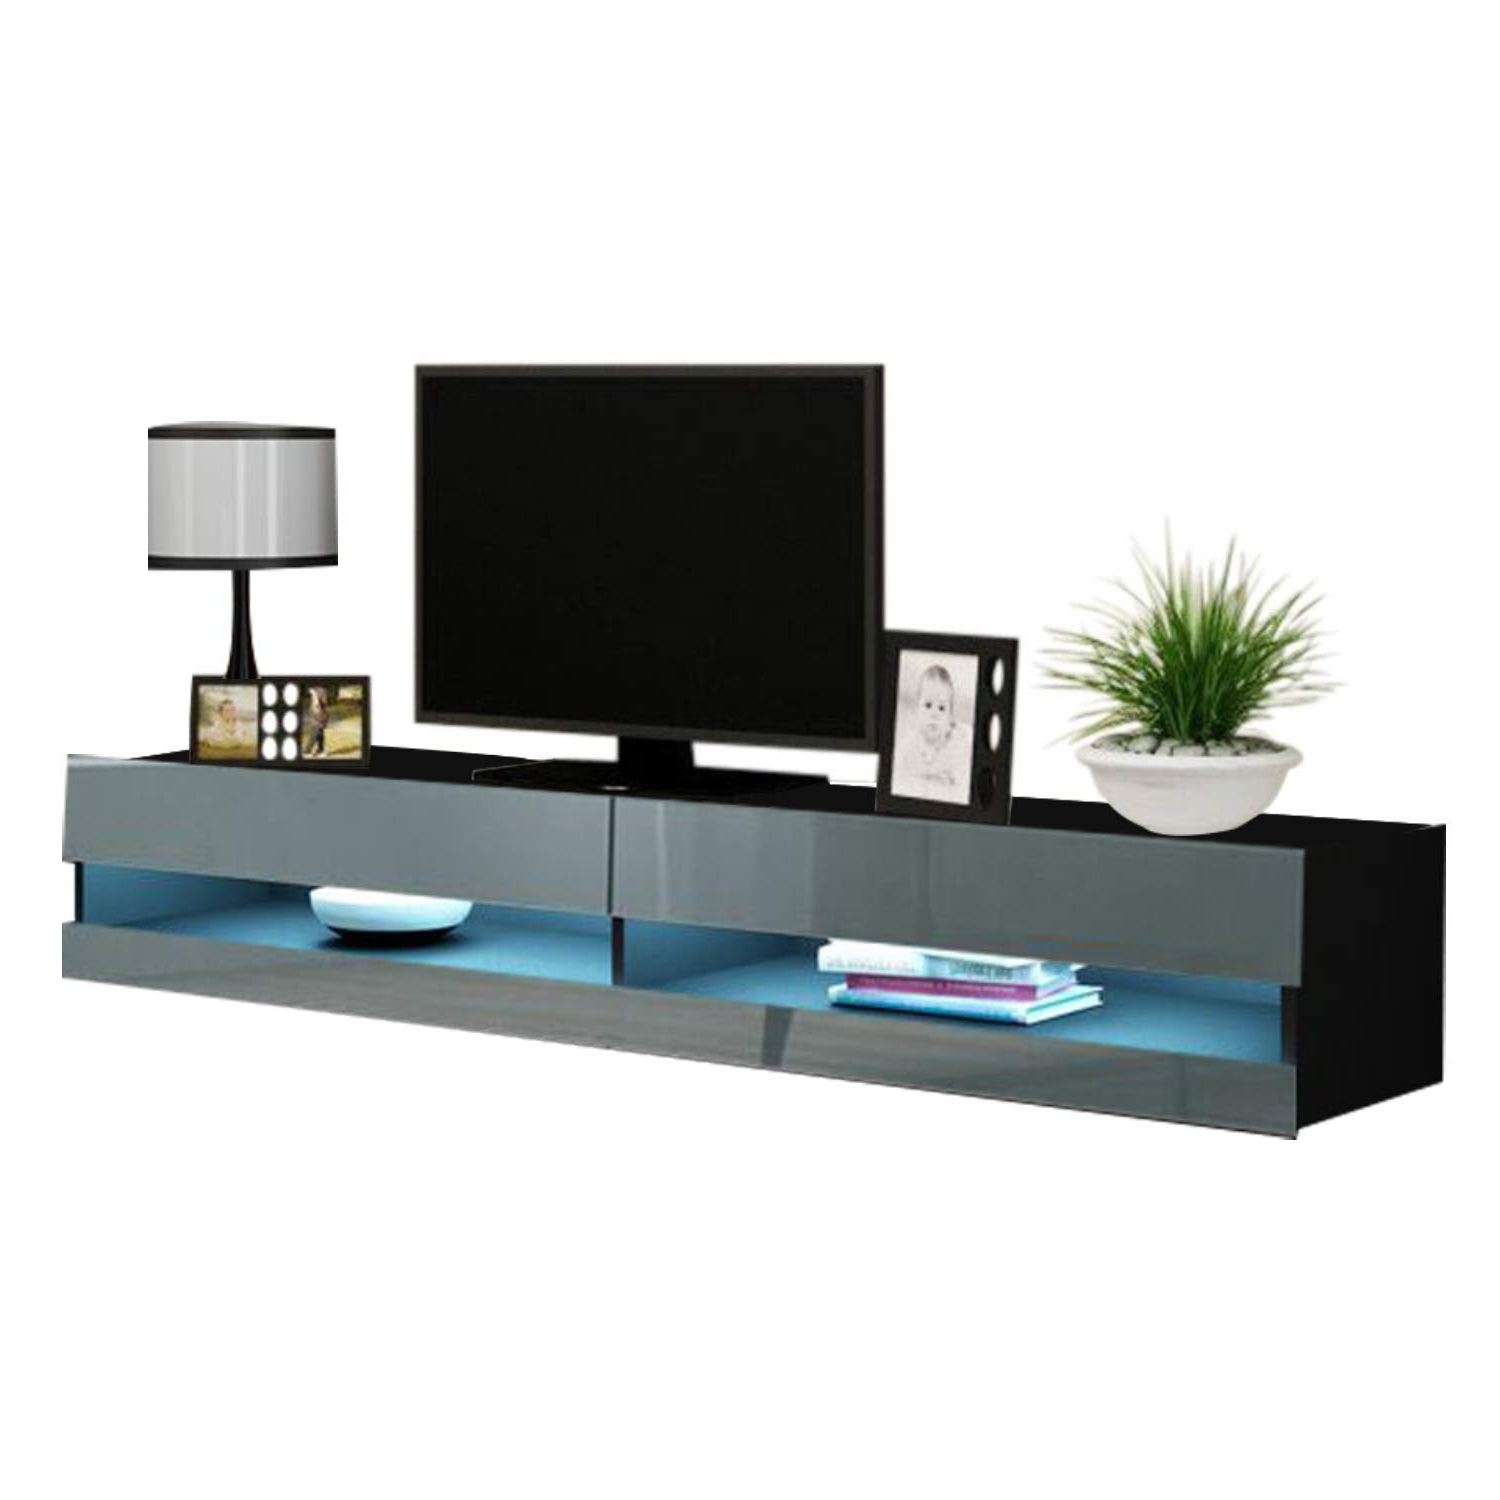 """Vigo New 180 Led Wall Mounted 71"""" Floating Tv Stand, Black Inside 57'' Led Tv Stands Cabinet (View 17 of 20)"""